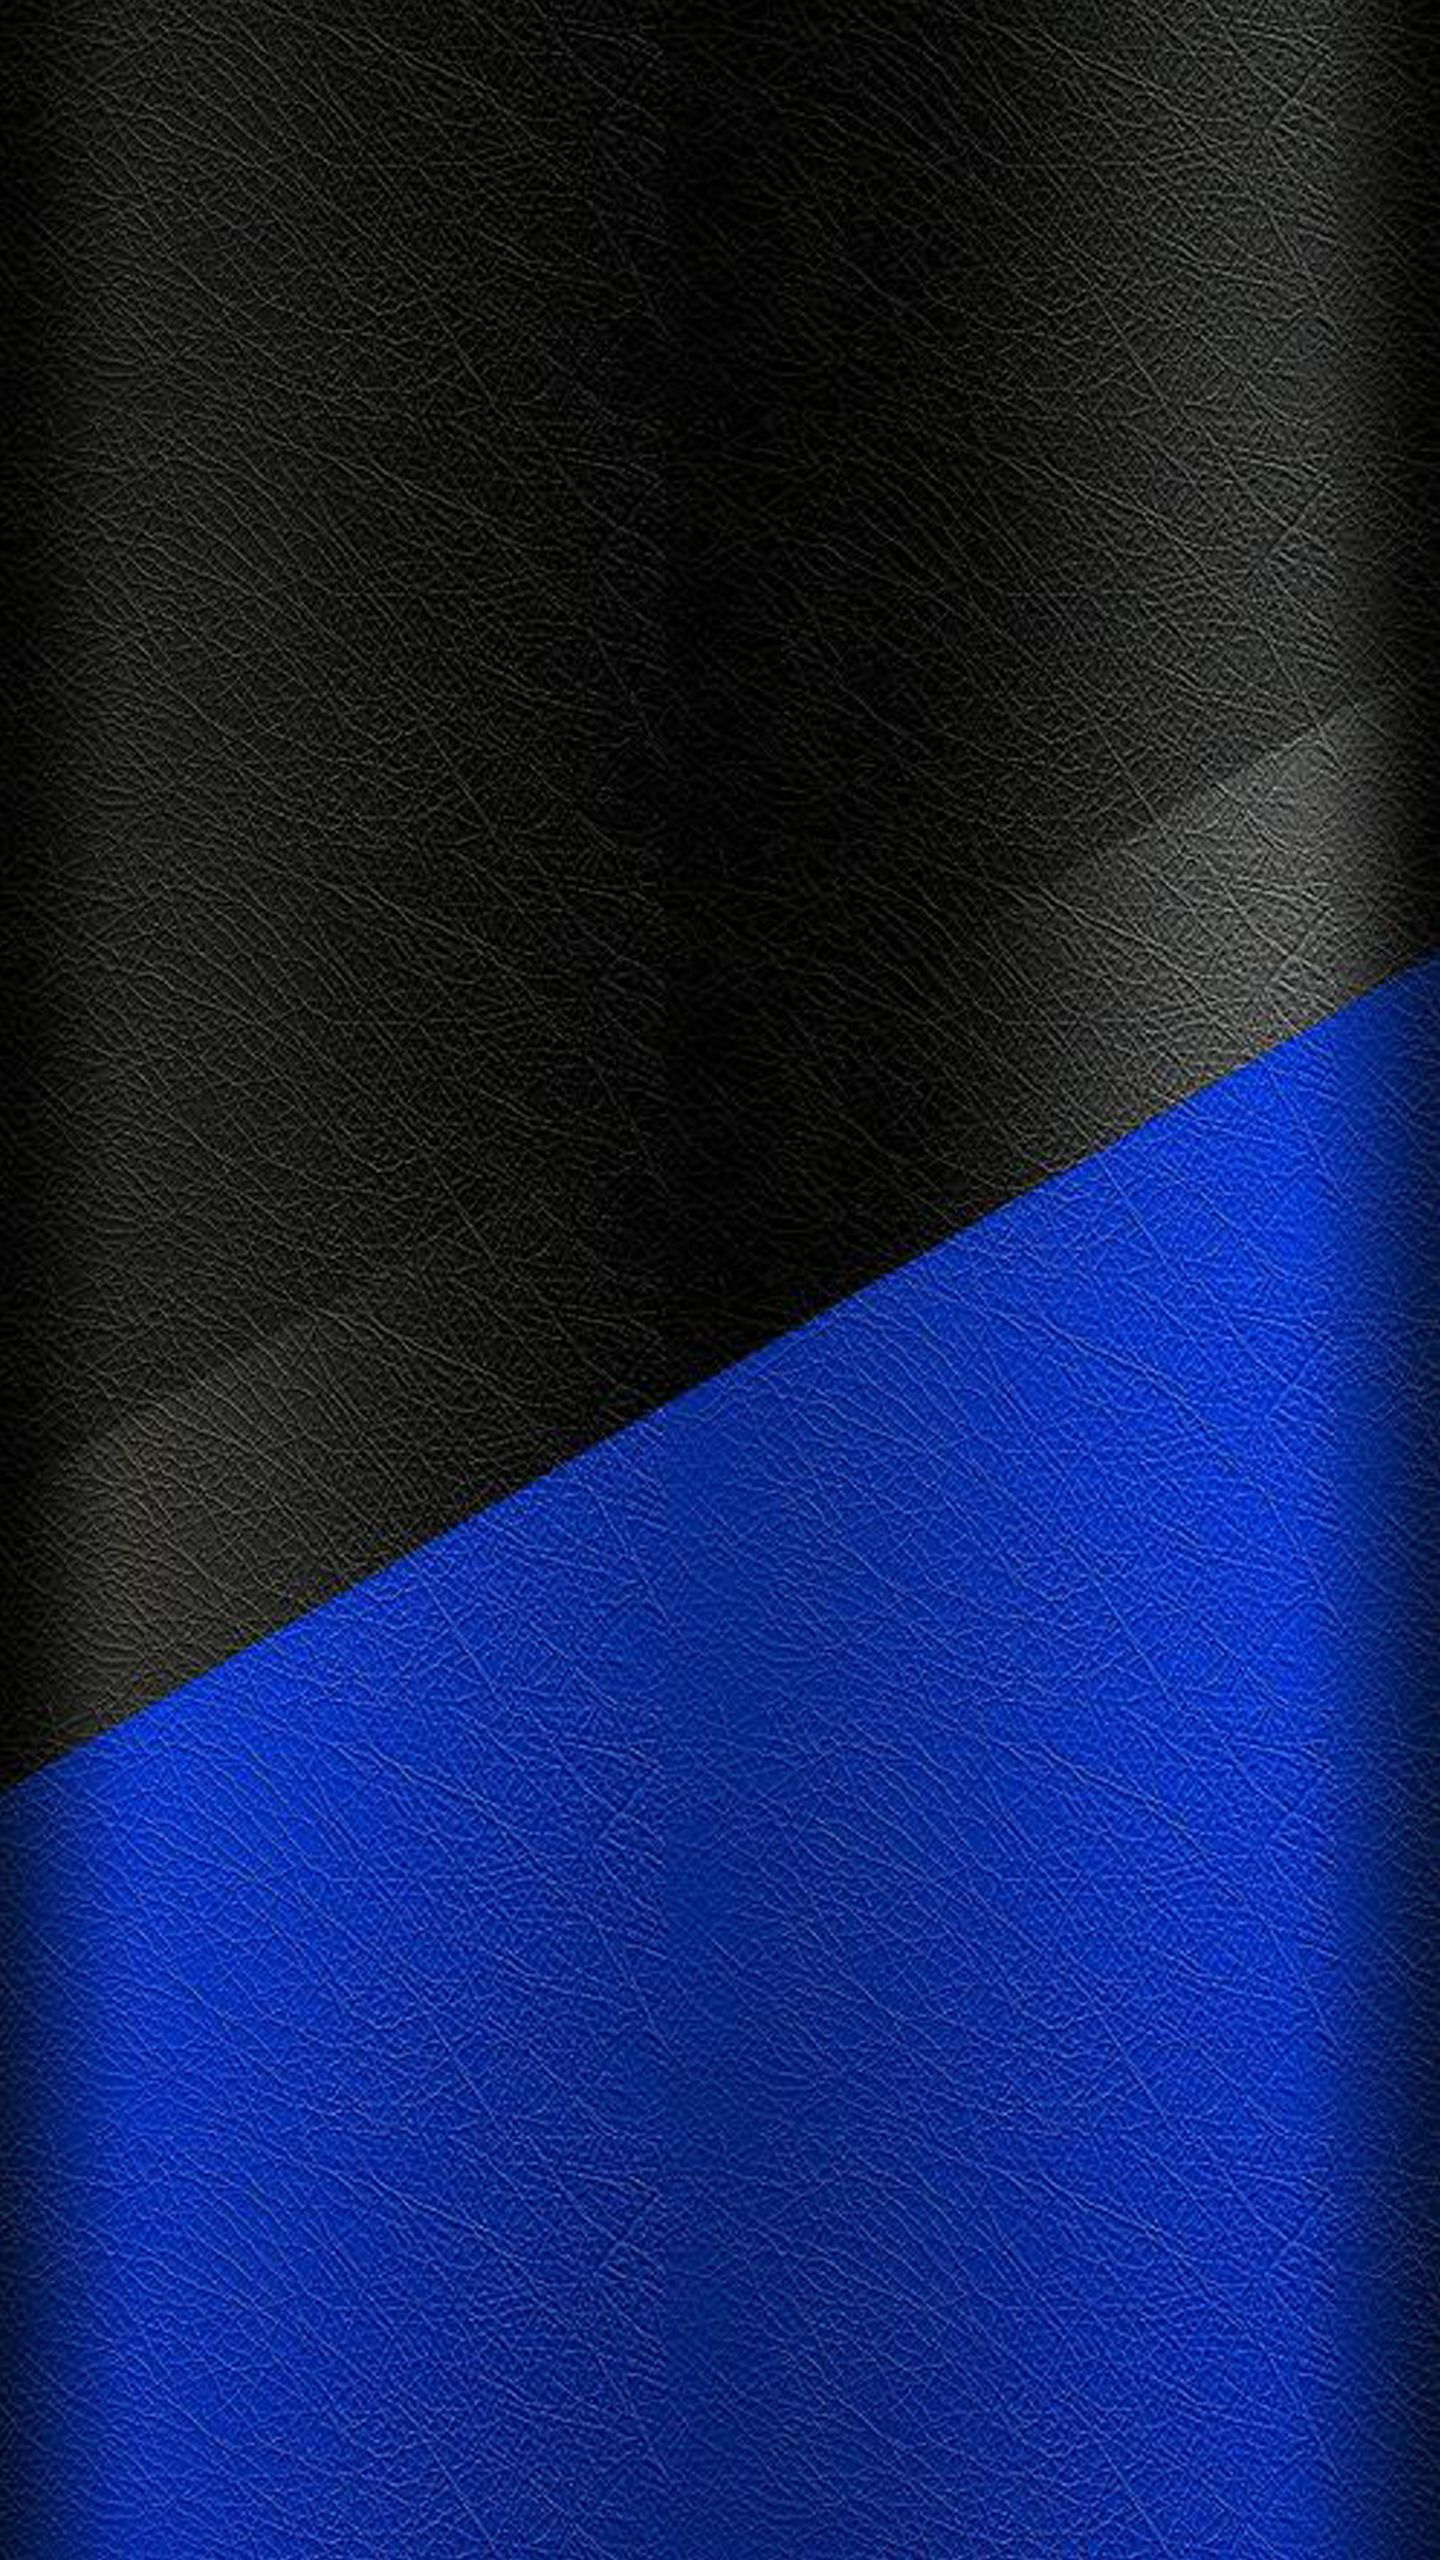 Dark S7 Edge Wallpaper 02 Black And Blue Leather Pattern Hd Wallpapers Wallpapers Download High Resolution Wallpapers Wallpaper Edge Samsung Galaxy Wallpaper Black And Blue Wallpaper